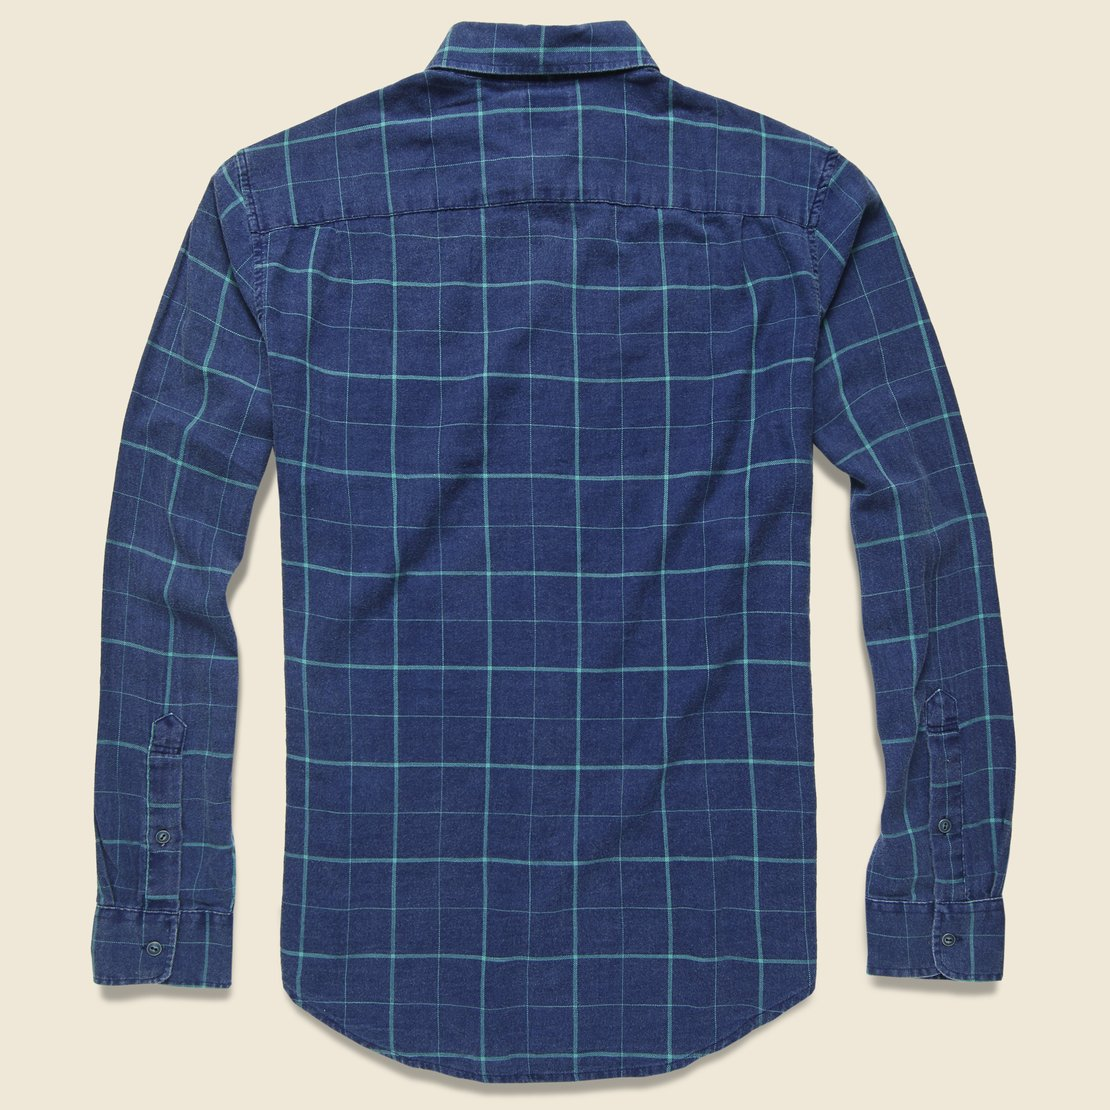 Windowpane Ventura Shirt - Indigo/Blue